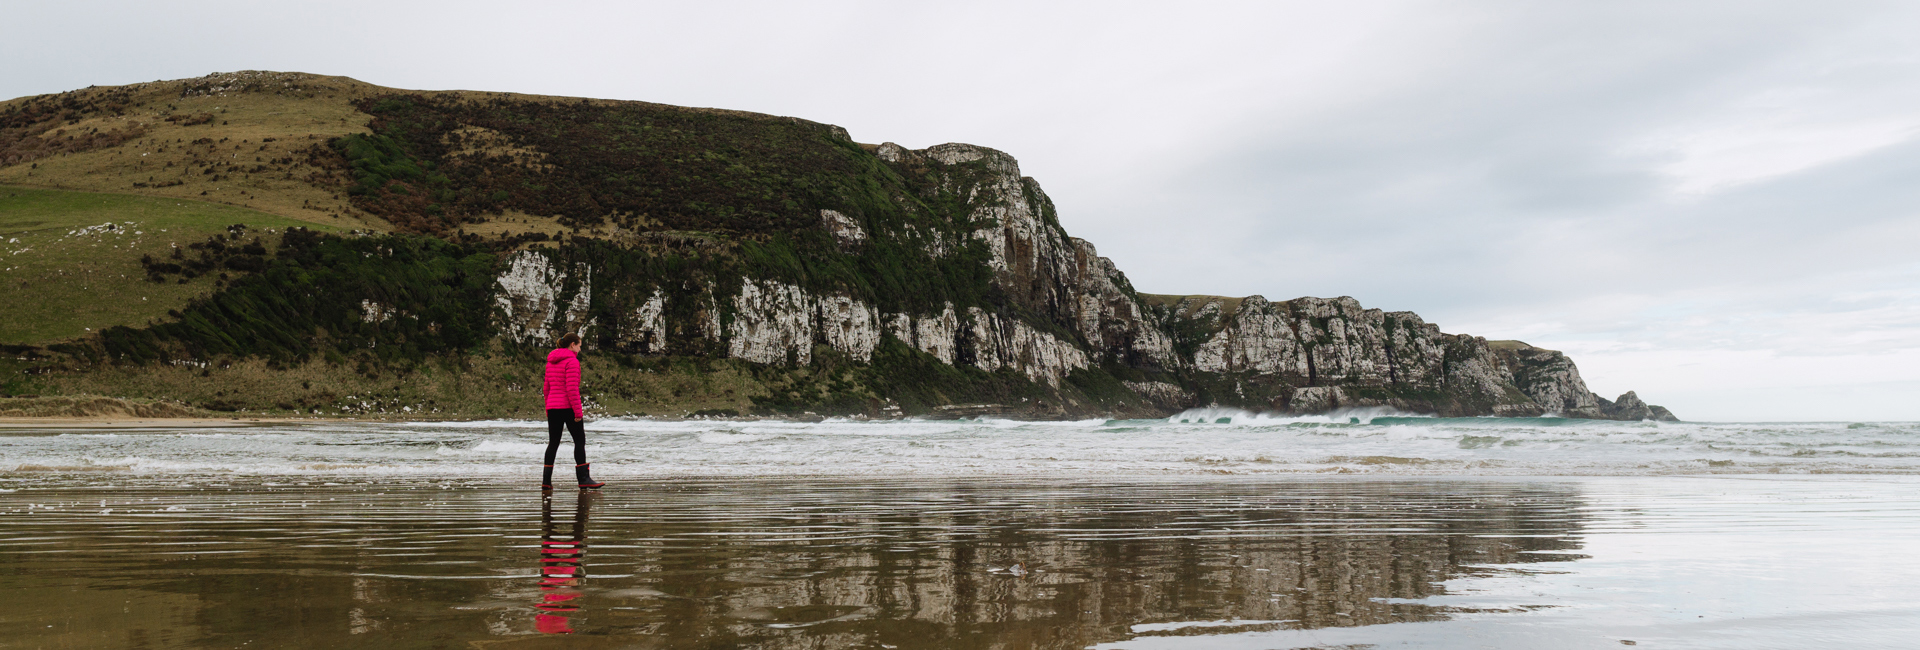 Southern Scenic Route through The Catlins